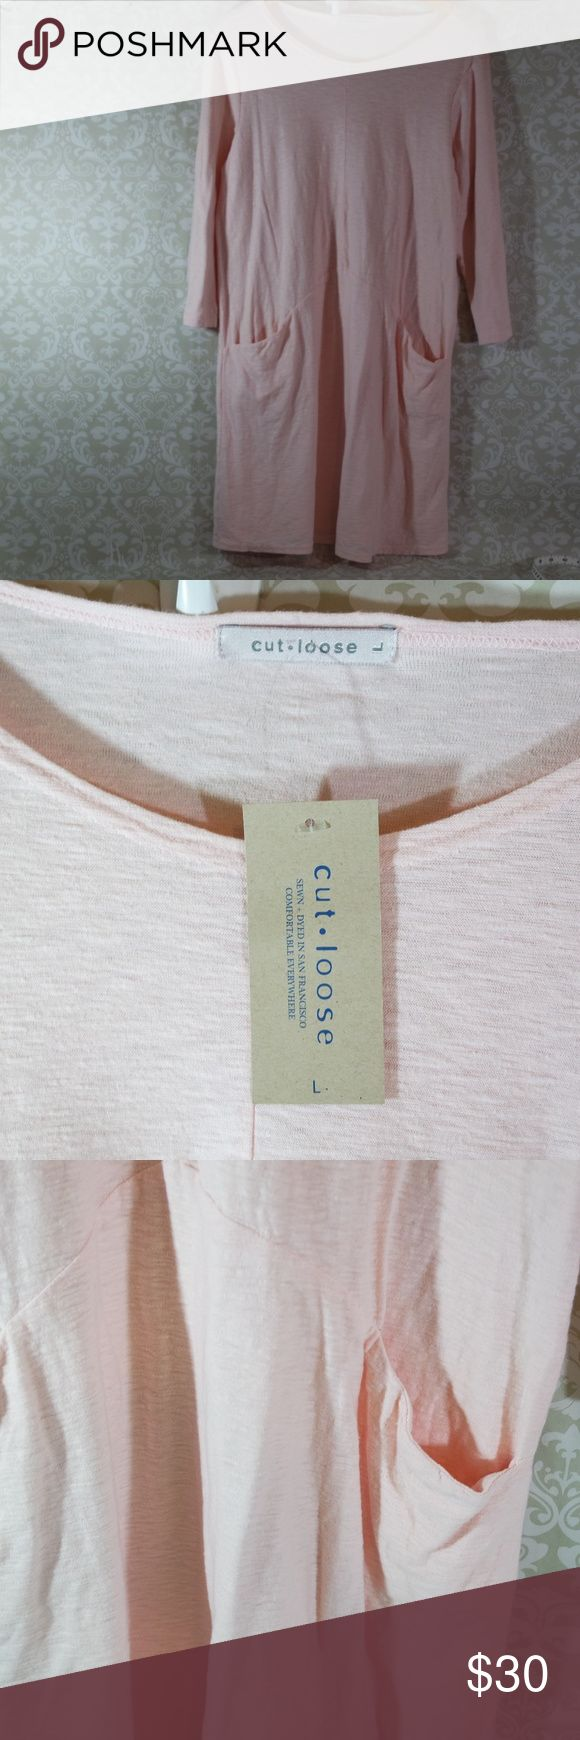 NWT Pink Cut Loose Casual Dress Size L New with tags casual pink dress by Cut Loose.  70% Cotton  30% Linen.  Two front pockets.  Perfect weekend dress.  Stylish yet comfortable.  Knee length.  200118M Cut Loose Dresses Midi